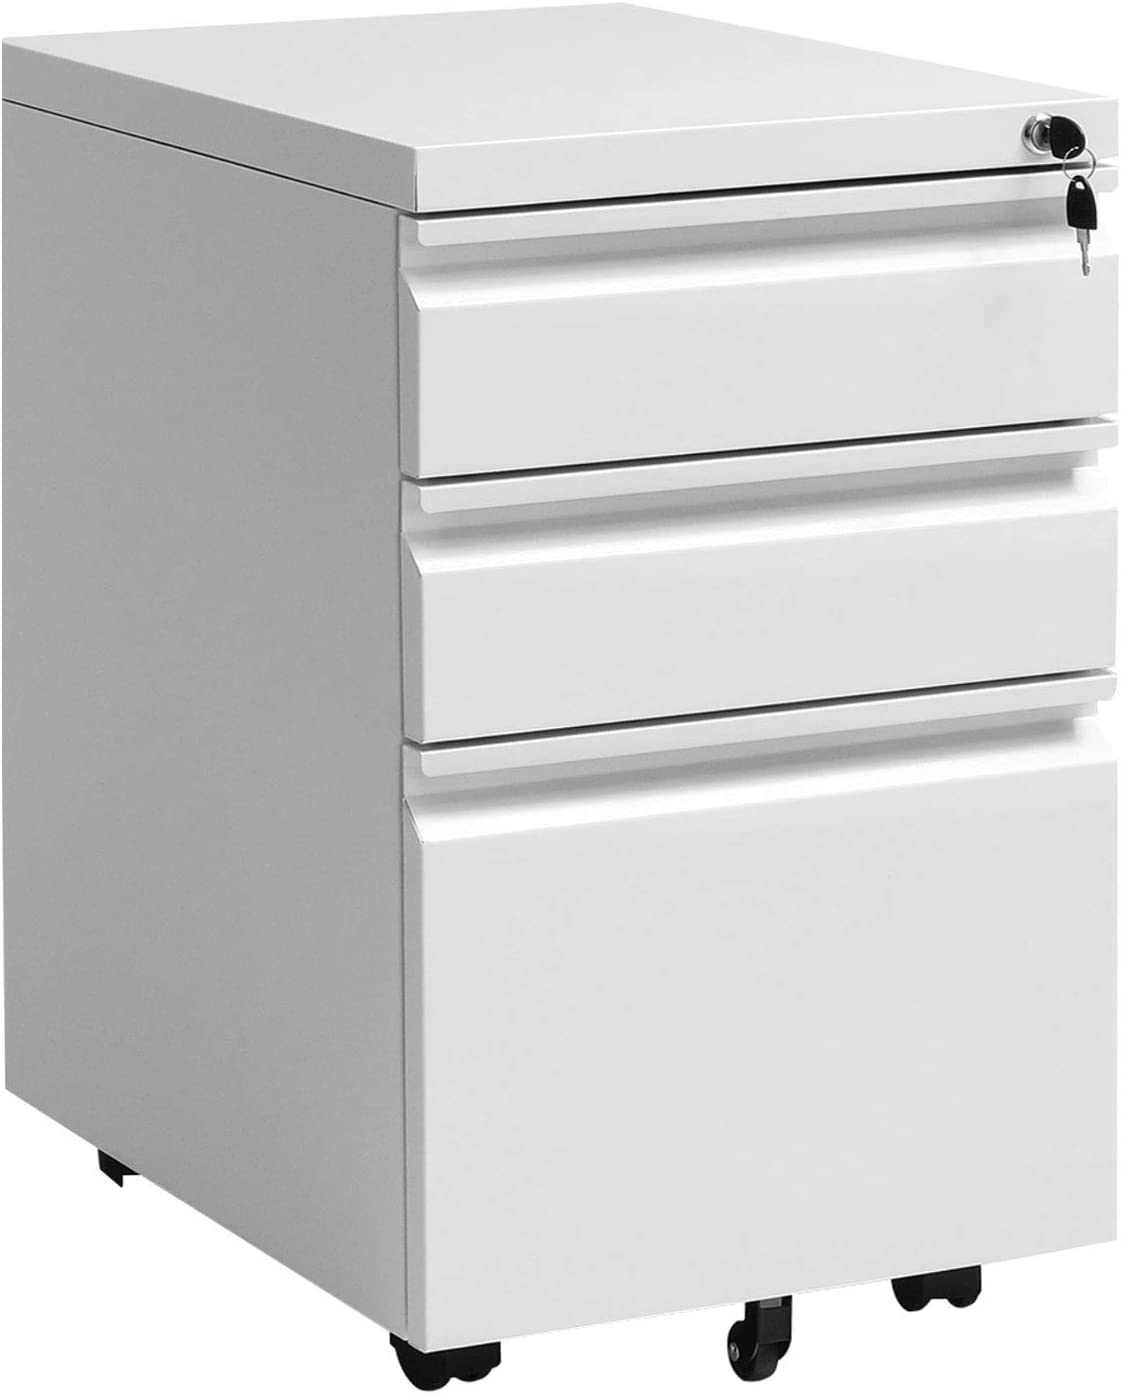 Amazon Com Superday White Small File Cabinet Metal 3 Drawer File Cabinet With Lock Under Desk Lateral Cabinet Rolling Vertical File Cabinet For Home Office Fully Assembled Except Wheel Office Products